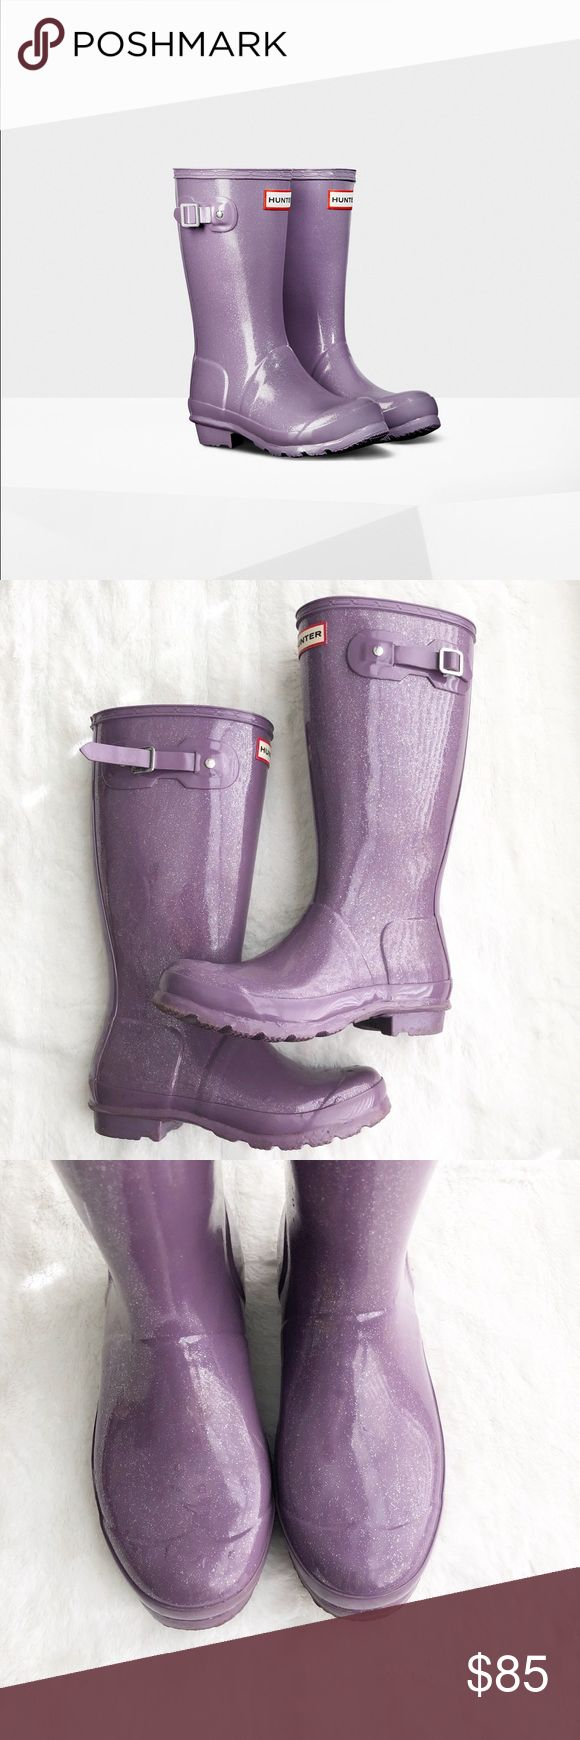 🌸SALE🌸Hunter Purple Glitter Boots Step into spring with these fun light purple glitter rain boots. These are meant to be kids but are an EU35/36. I wear a 6 and these fit perfect. Perfect if you're petite like me. In fantastic shape. Minimal wear on the soles, small scuffs on the heels. Feel free to make an offer 💕 Hunter Boots Shoes Winter & Rain Boots